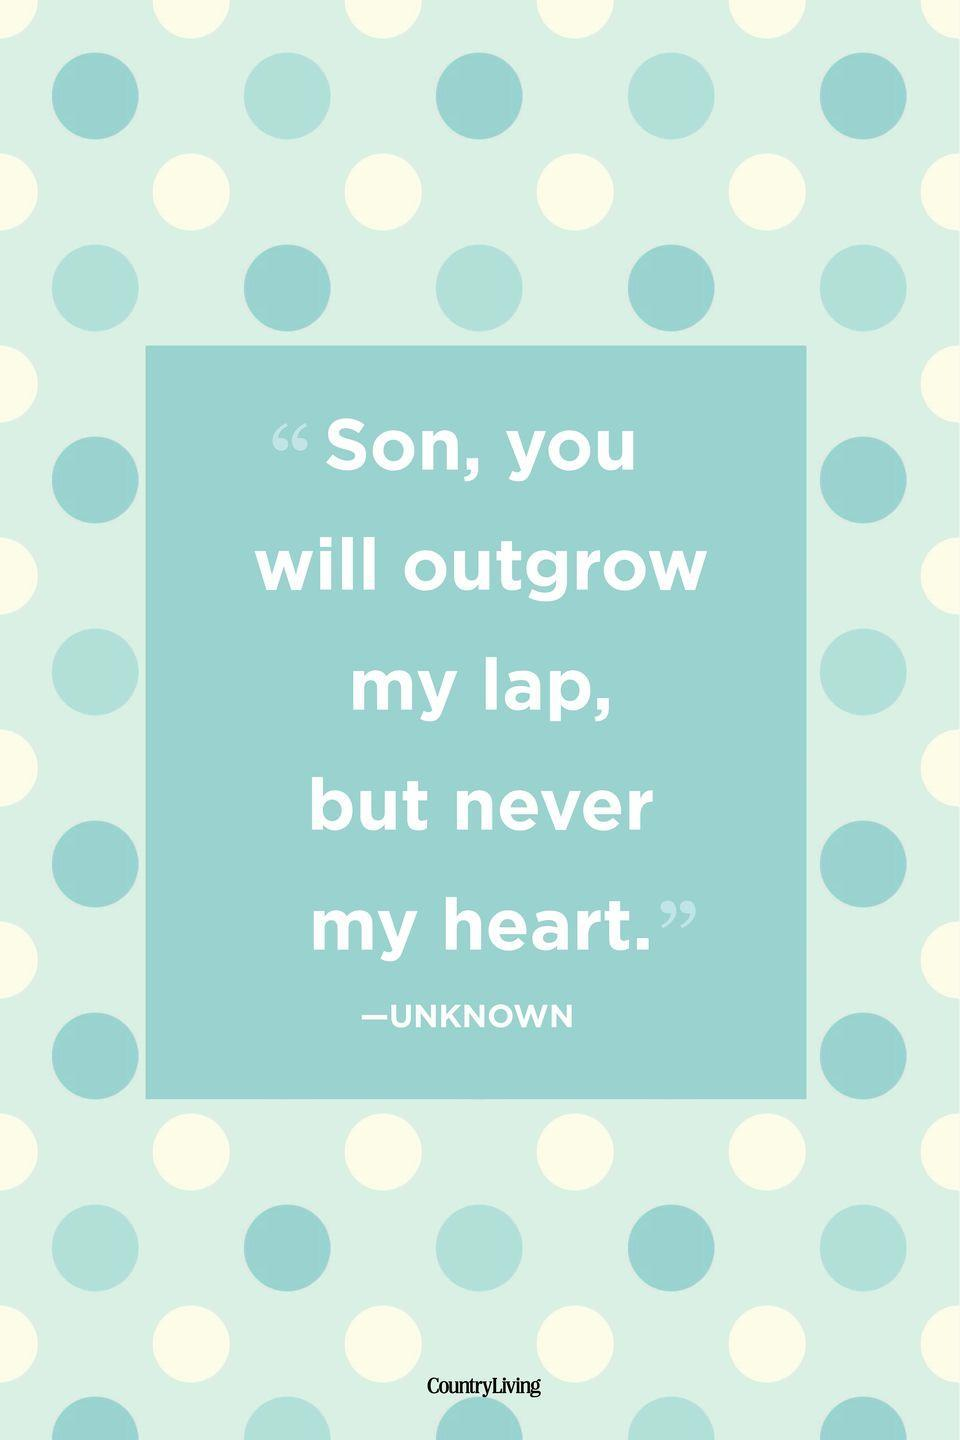 "<p>""Son, you will outgrow my lap, but never my heart.""</p>"